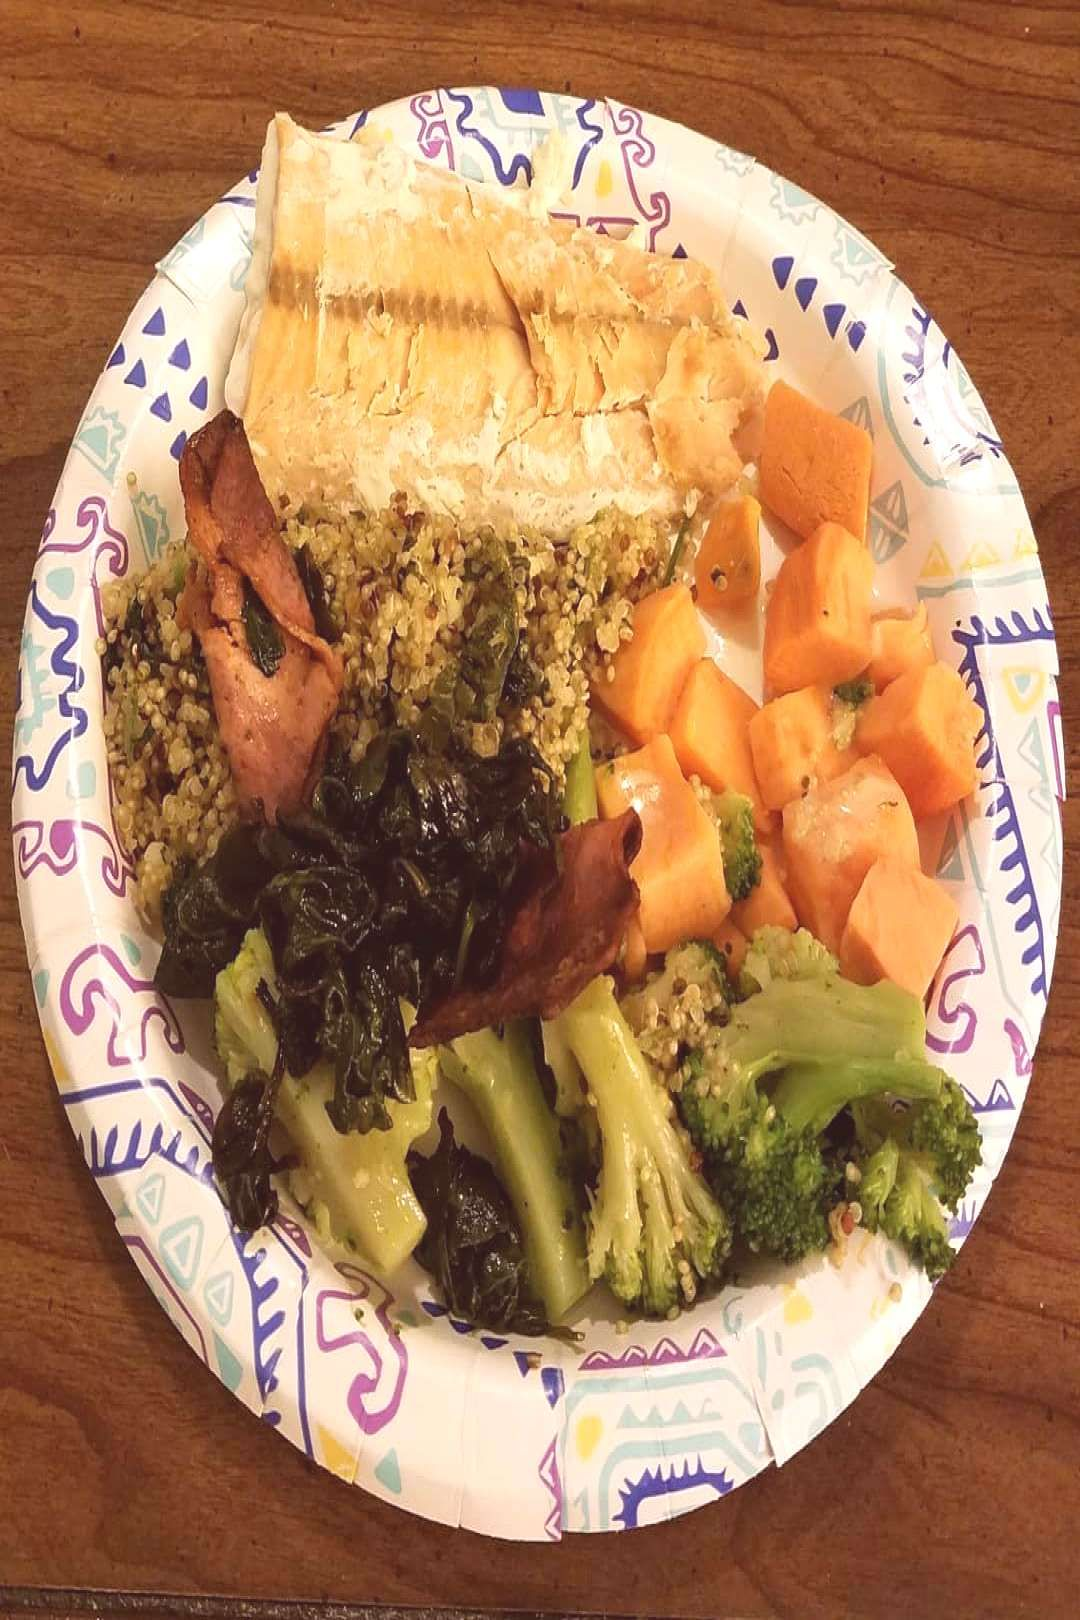 #dinner #really #hungry #every #nice #last #food #was #not #but #ate #i #p  Dinner was nice. I was not really hungry, but I ate every last pYou can find Trying to be healthy and more on our website. Dinner was nice. I was not real...